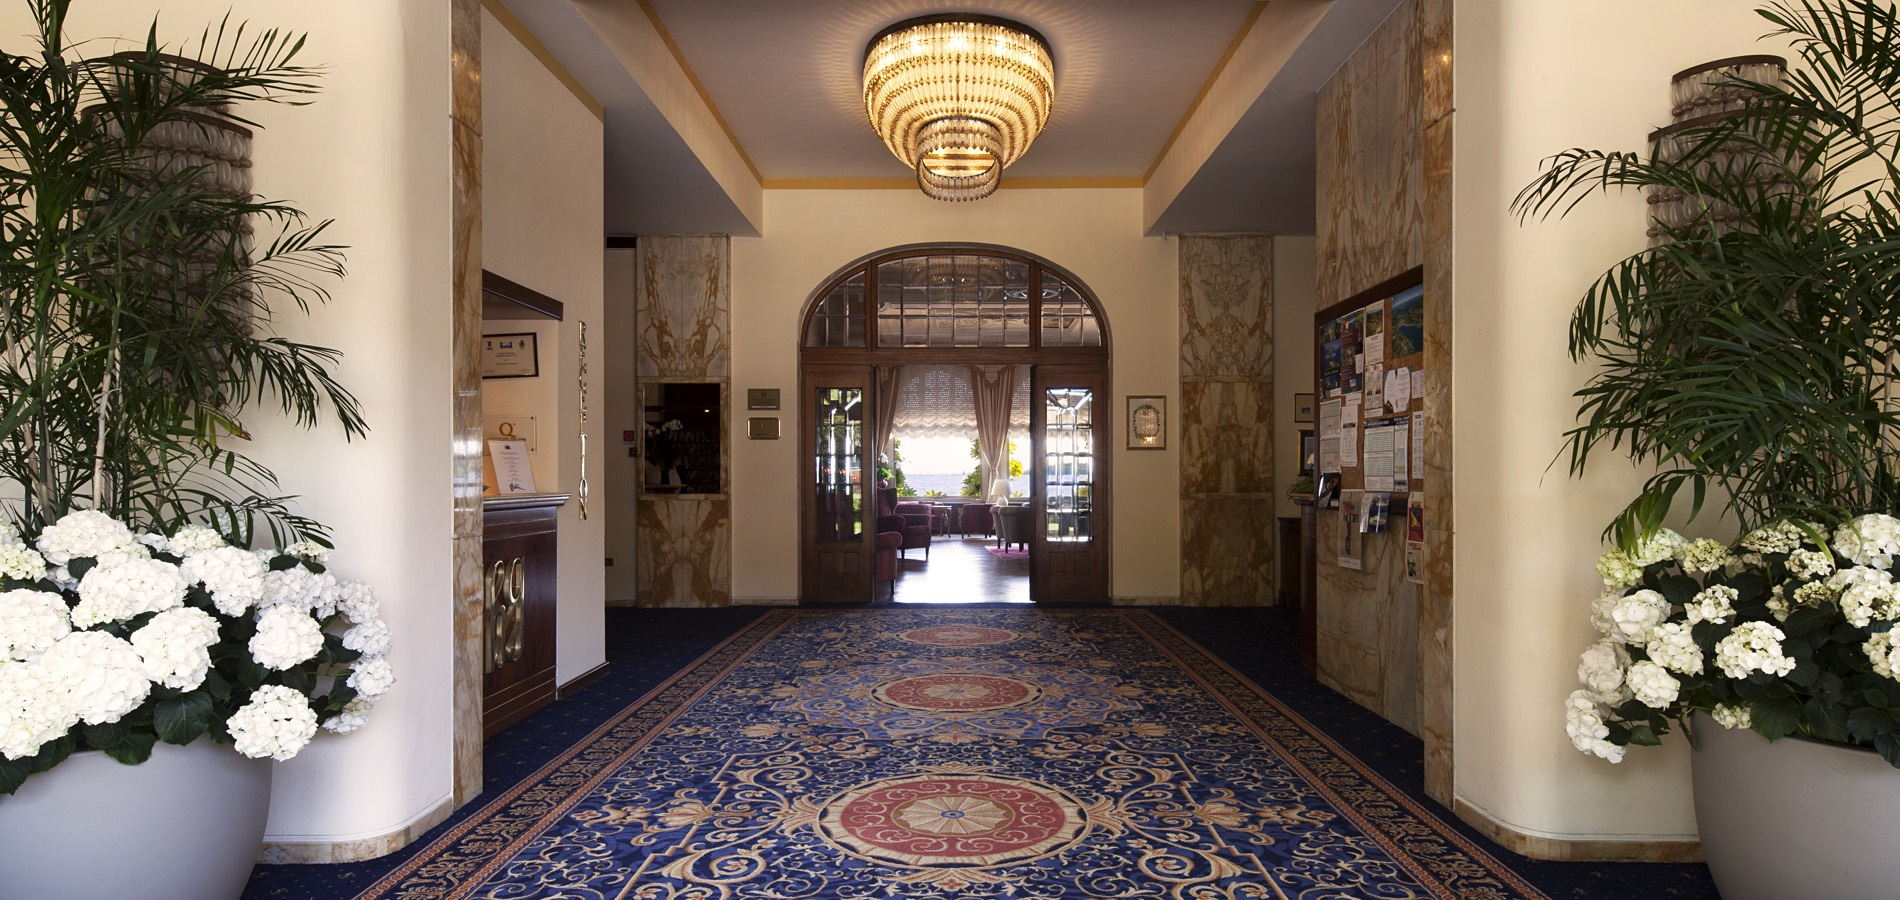 Grand Hotel Foyer : Welcome in a historical building on the garda lake